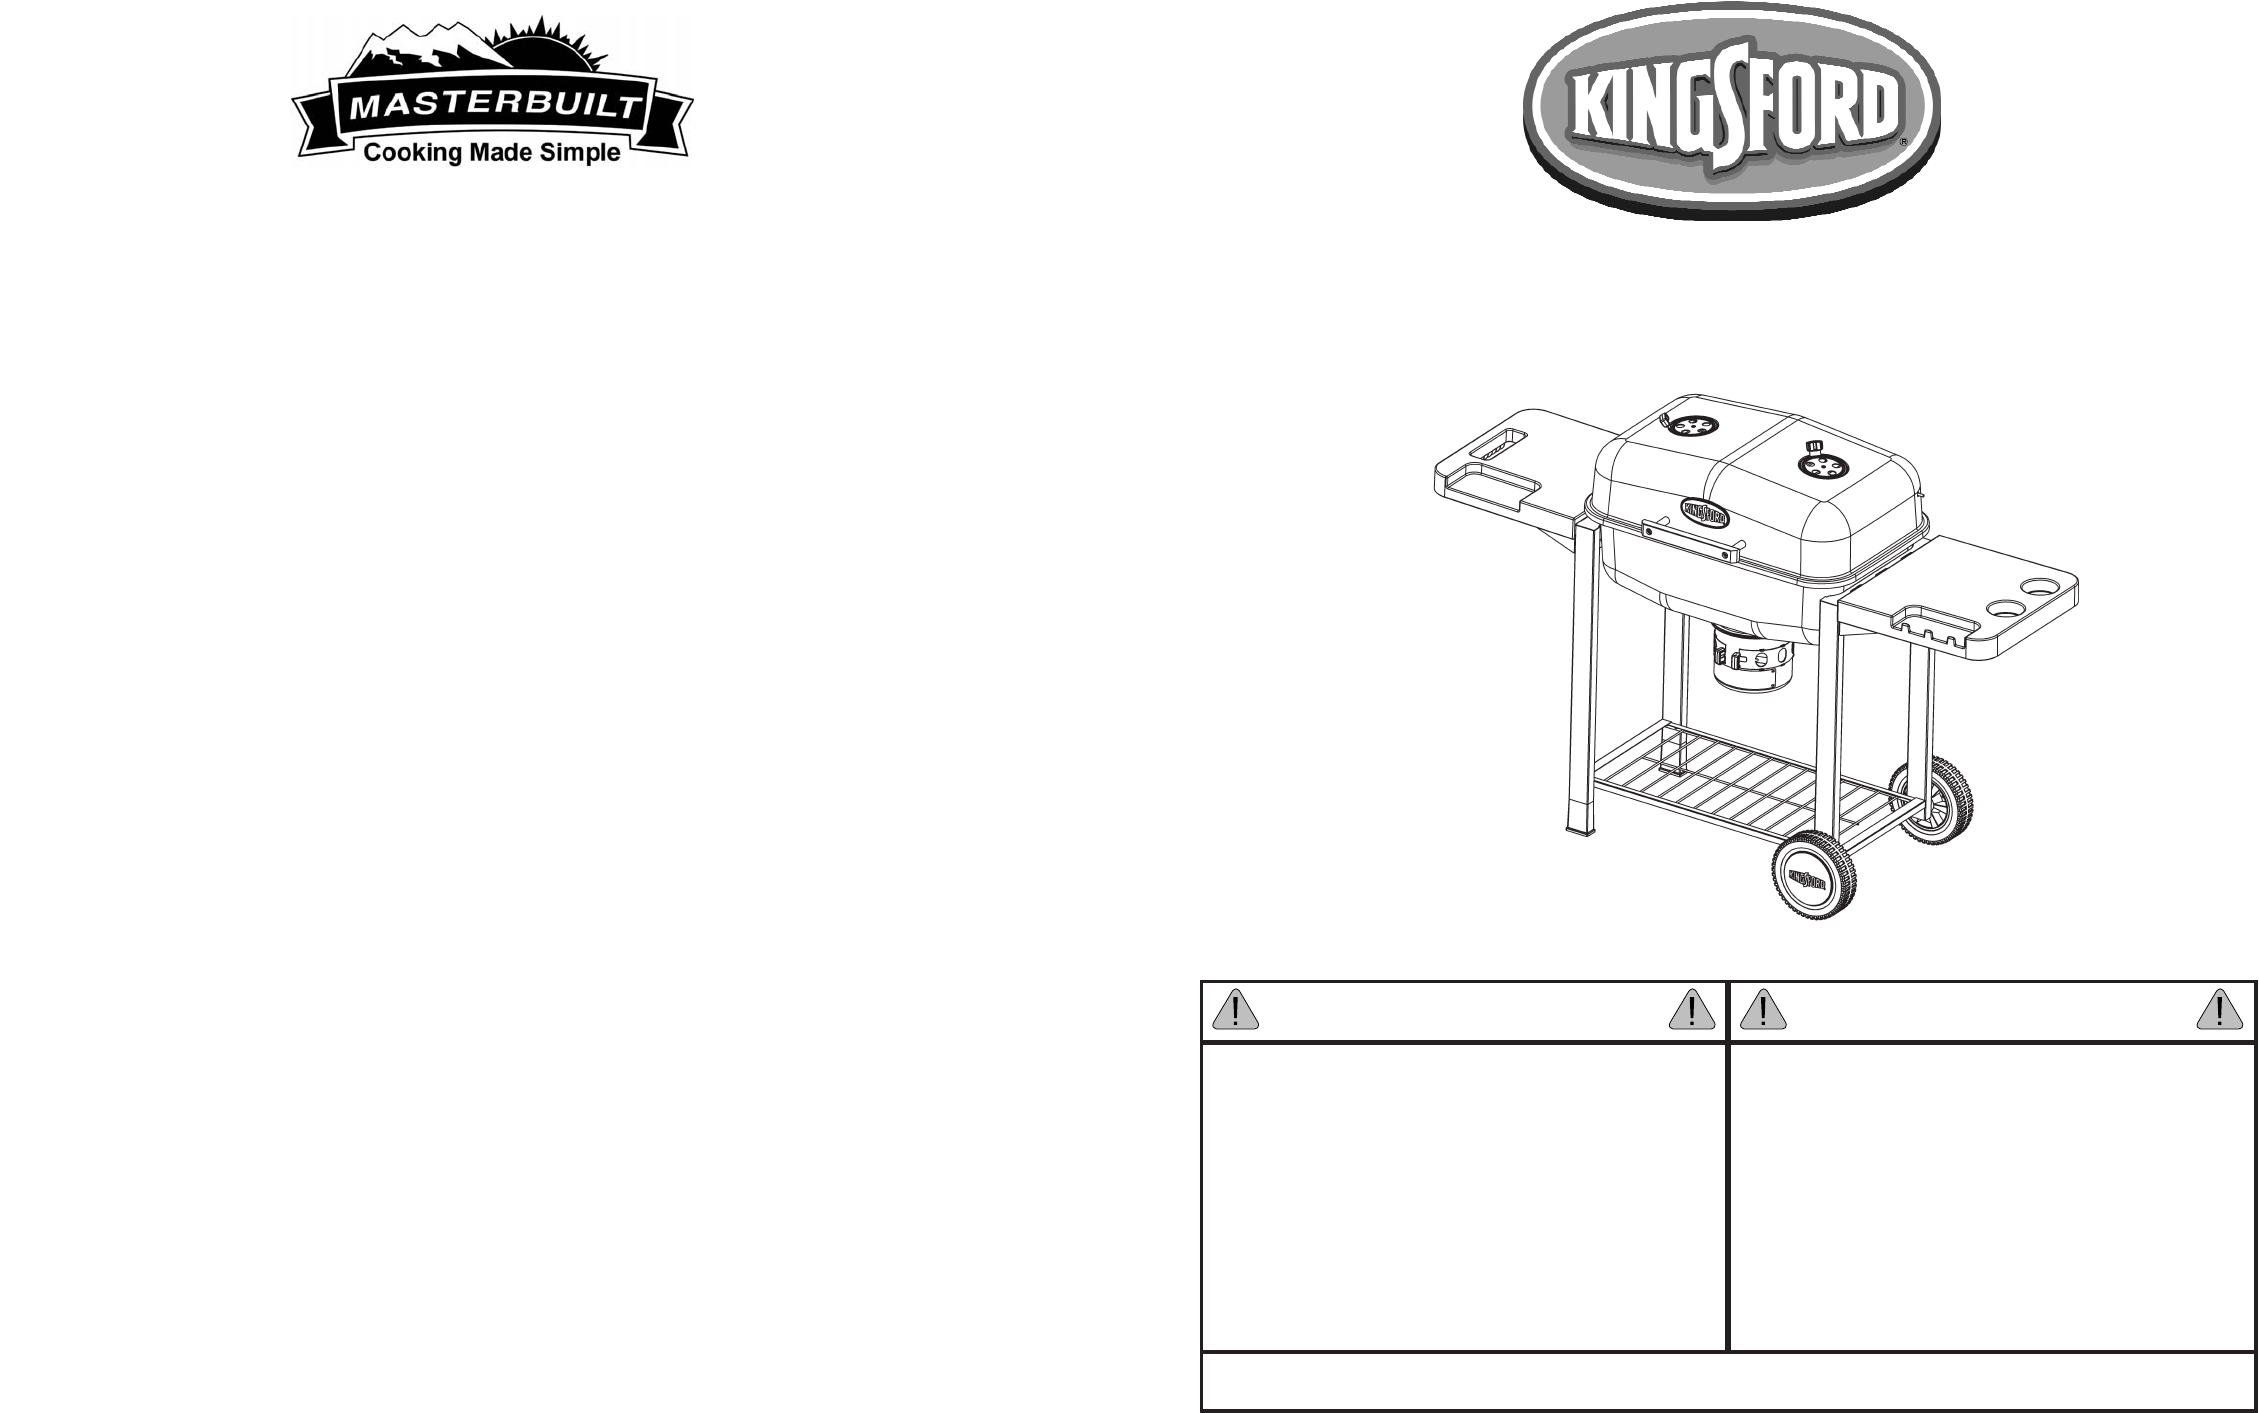 Kingsford Charcoal Grill 10040406 User Guide